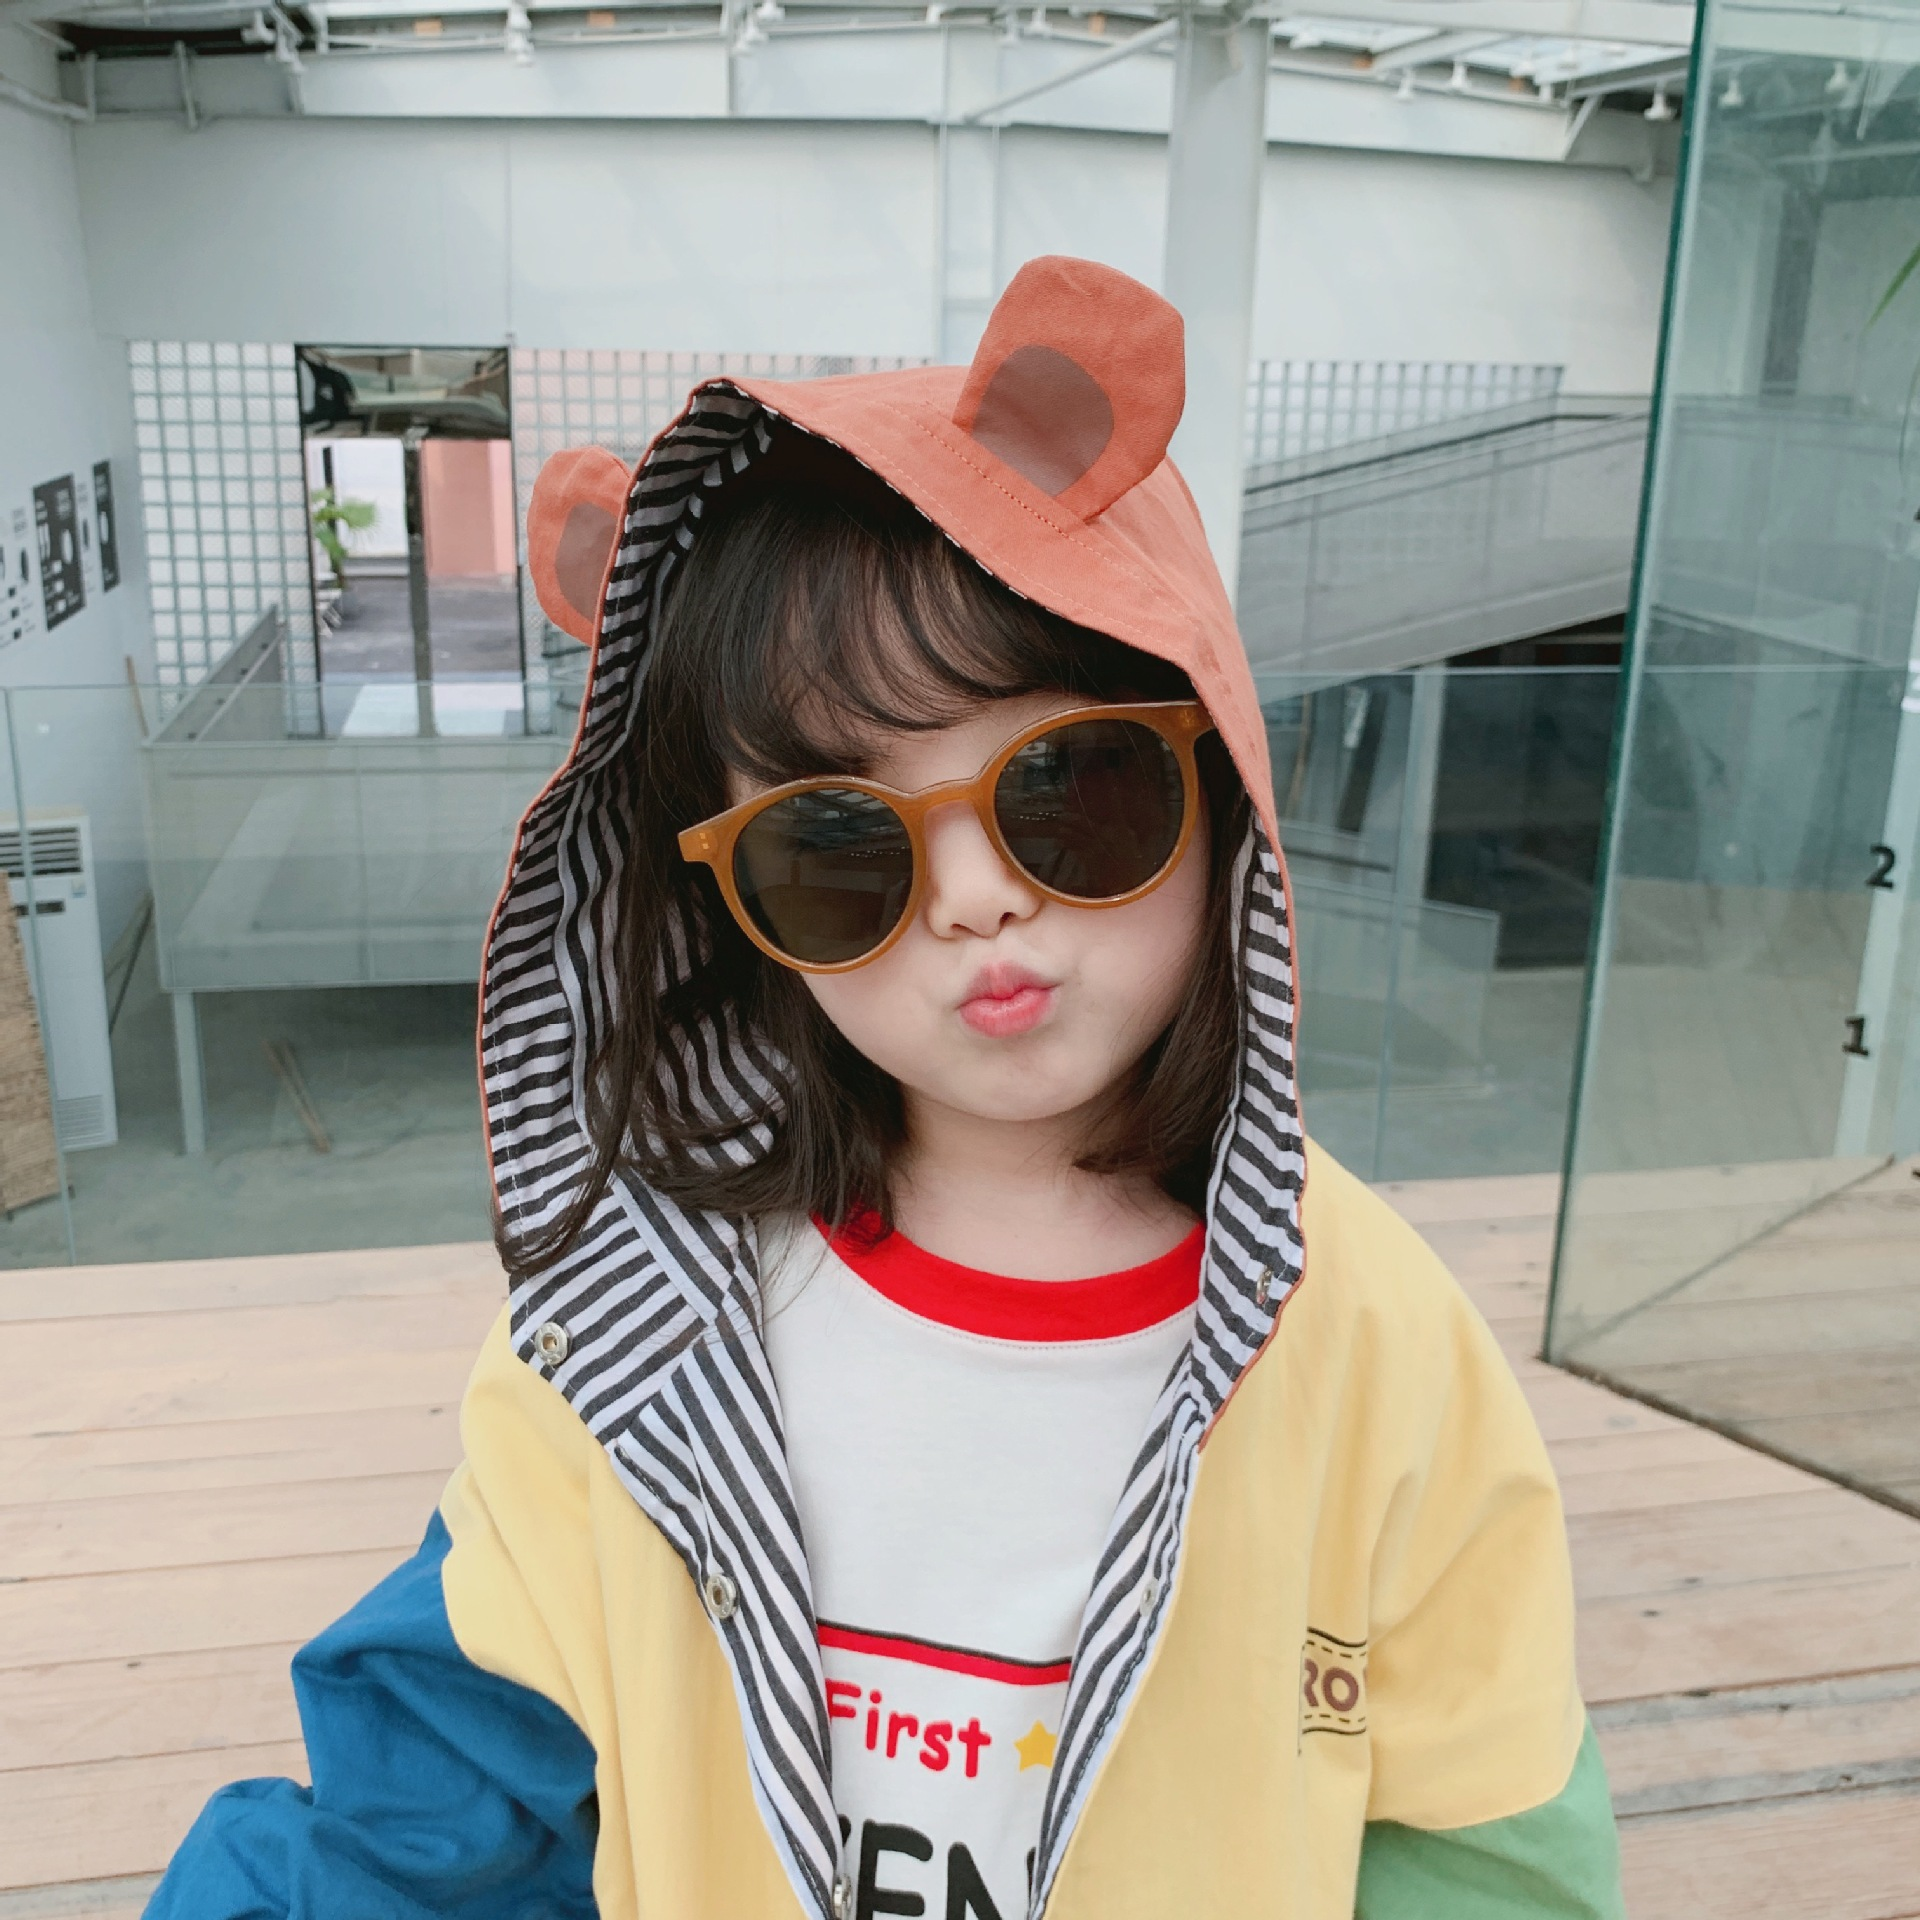 Autumn Kids Little Boys Cool A Sheep with a Bowtie Styles Baseball Jacket Outwear